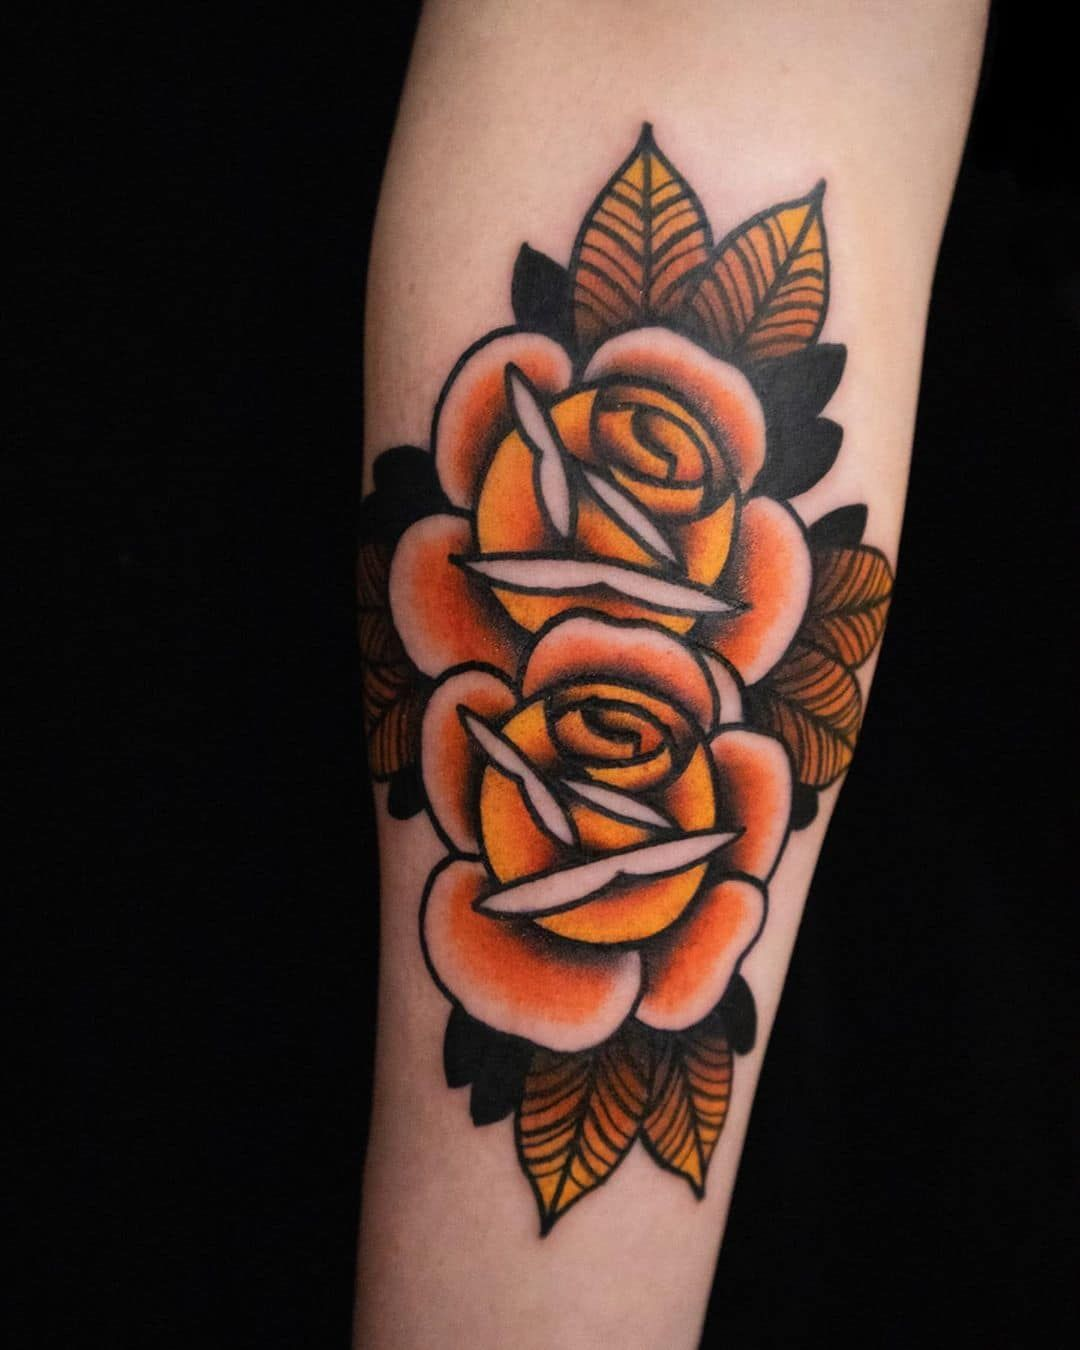 63 Traditional Rose Tattoo Designs You Need To See! | Outsons | Men's Fashion Tips And Style Guide For 2020